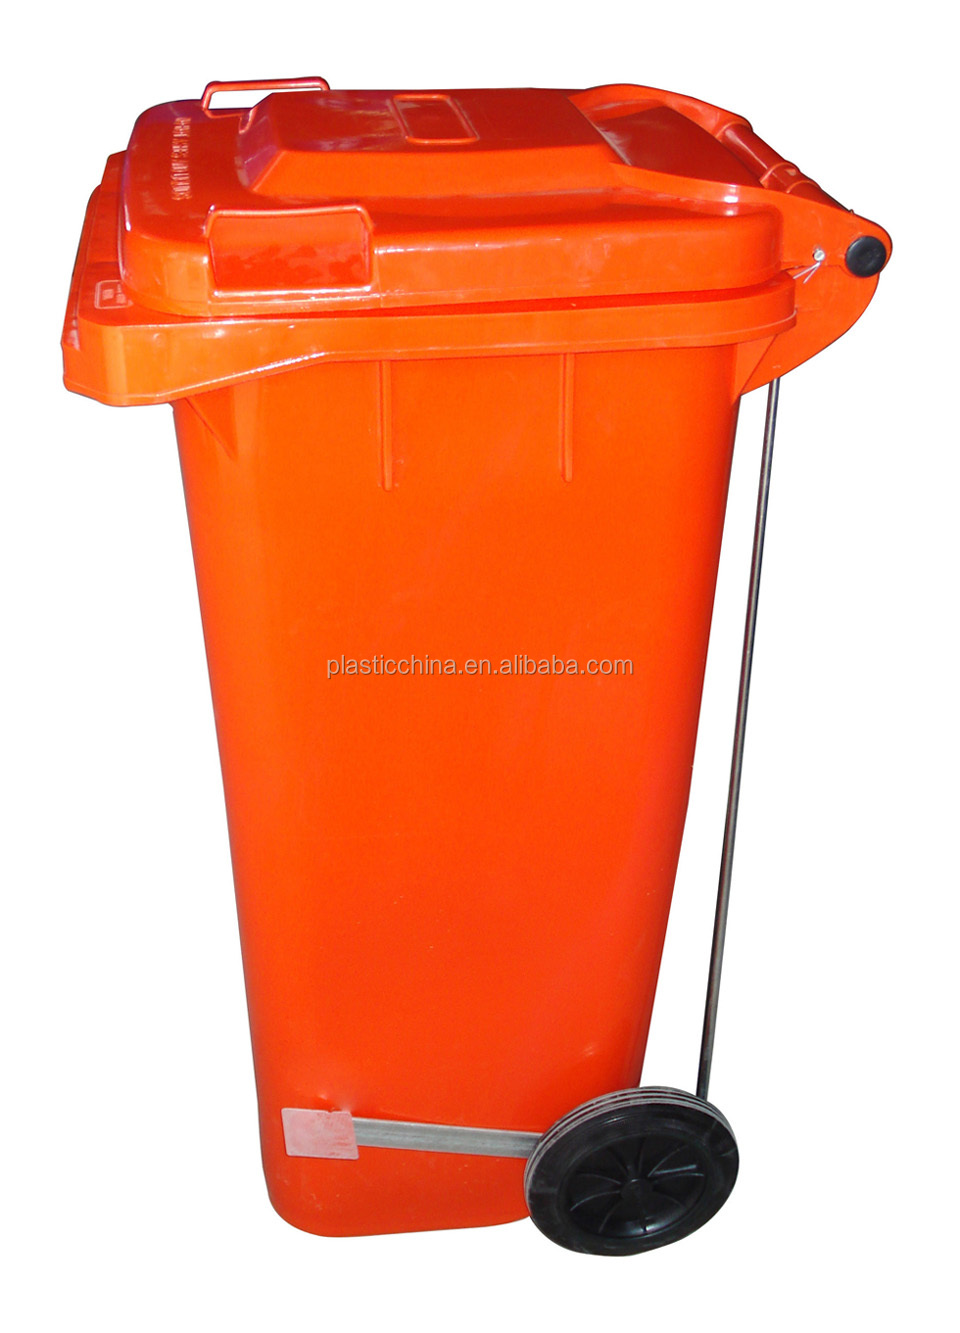 dustbin with pedal.jpg